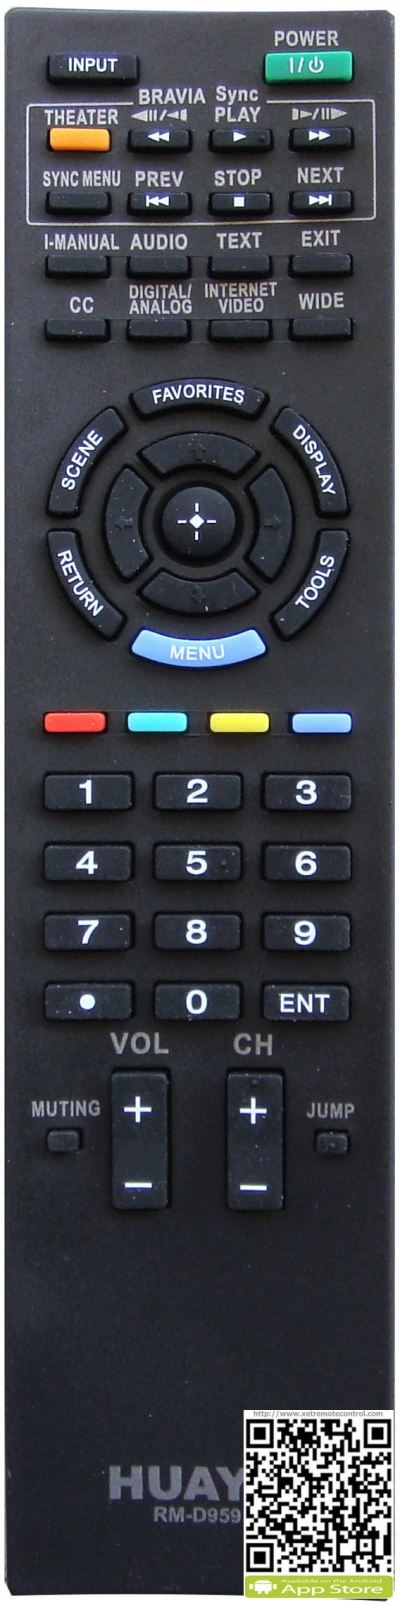 RM-D959 SONY LCD/LED TV REMOTE CONTROL